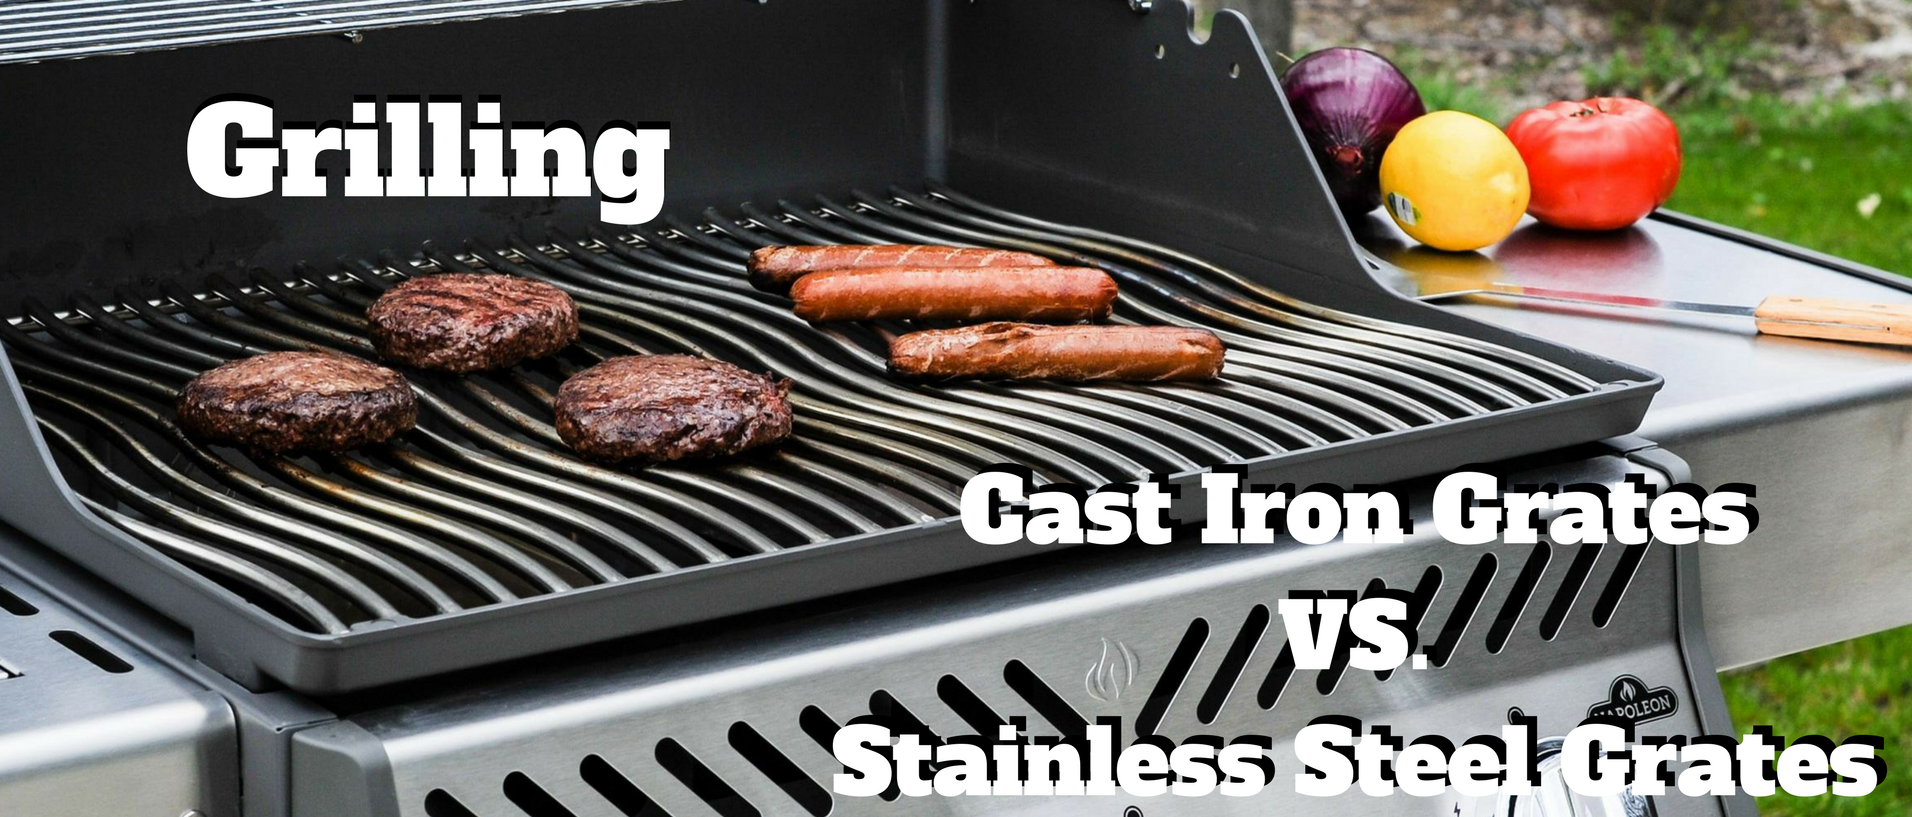 Cast Iron Grates vs. Stainless Steel Grates  Appliances Connection